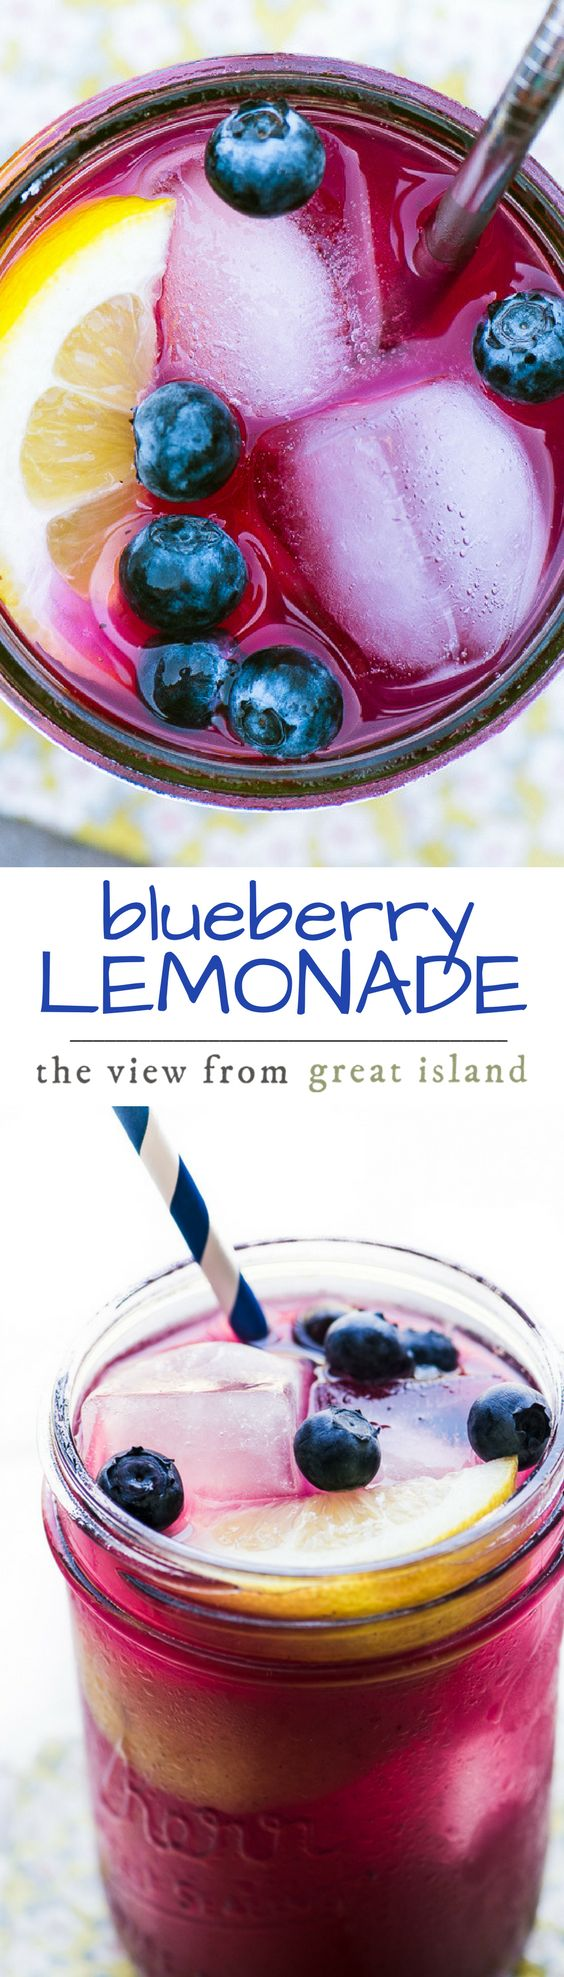 Blueberry Lemonade ~ here it is, the drink of the season! Hydrate with this deliciously tart beverage made with fresh lemons and a fresh blueberry puree. | beverage | summer drink | berries | healthy |